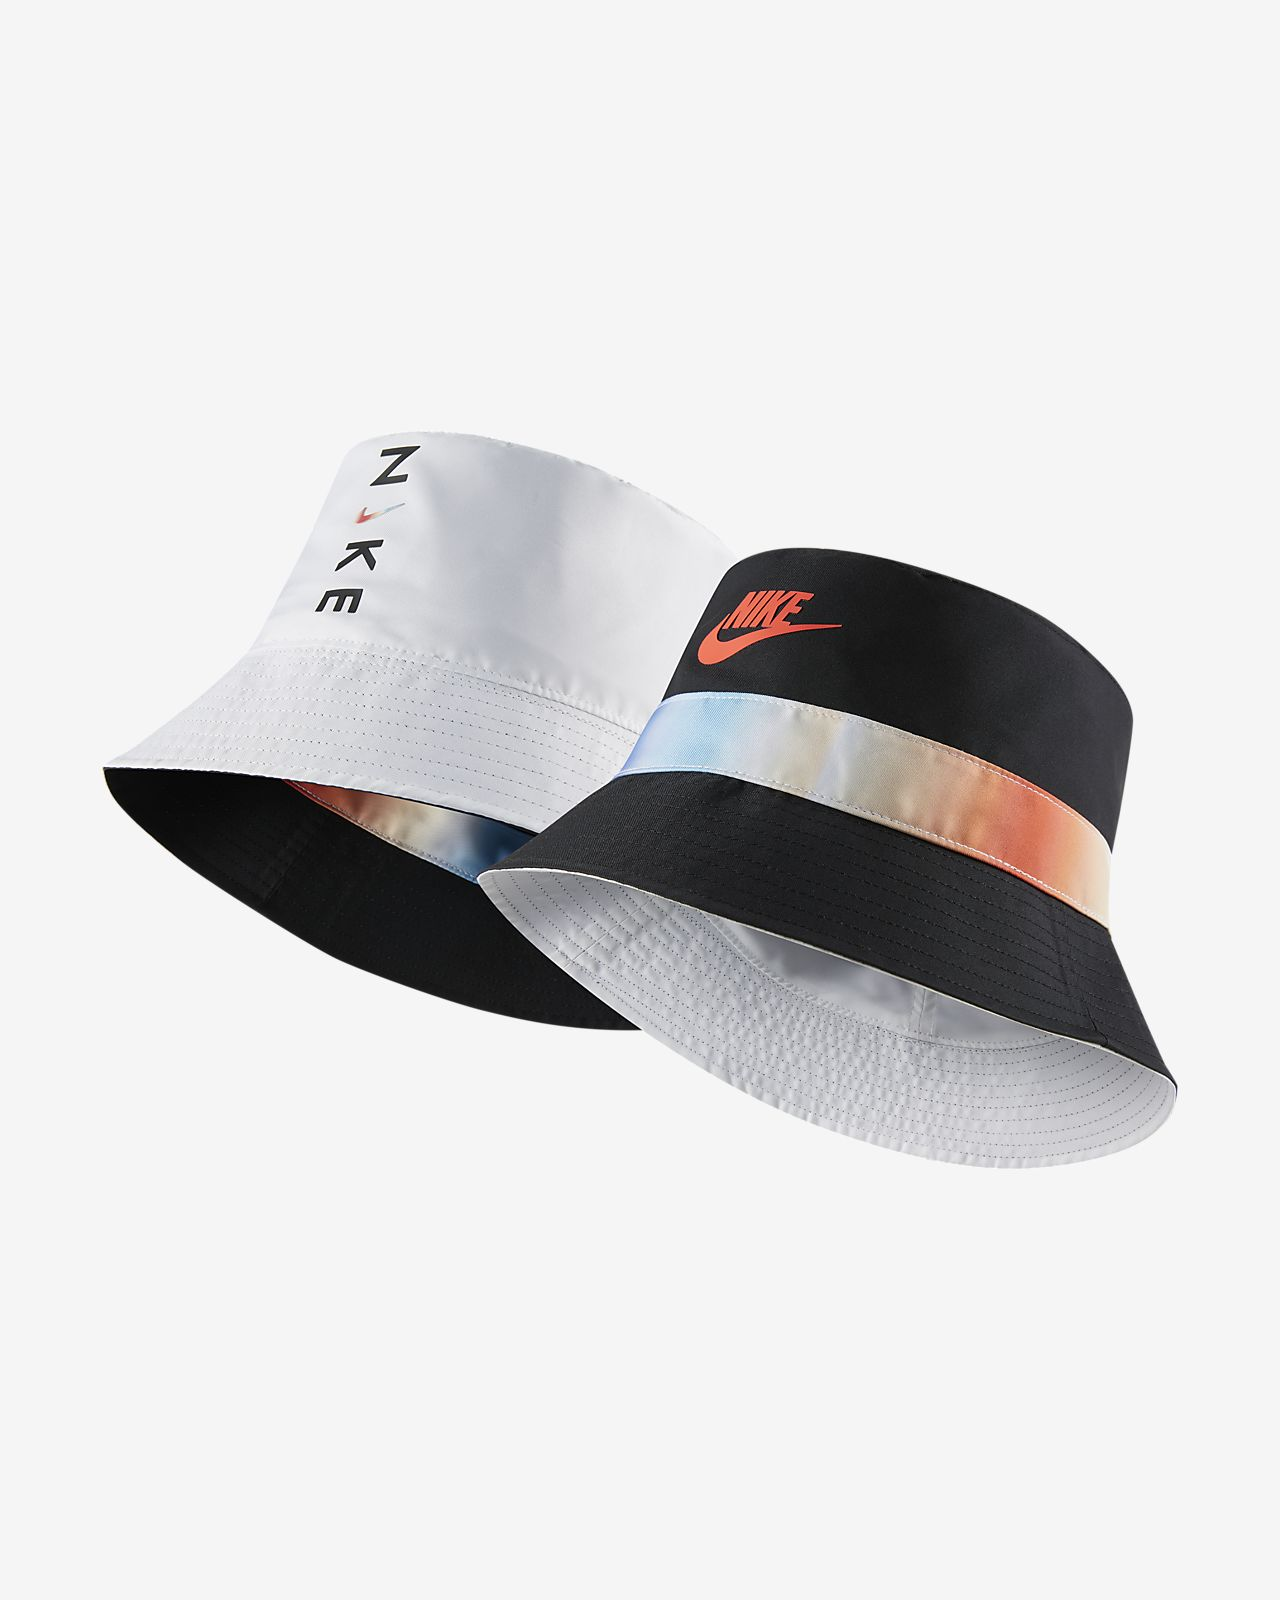 Nike Kids' Reversible Bucket Hat